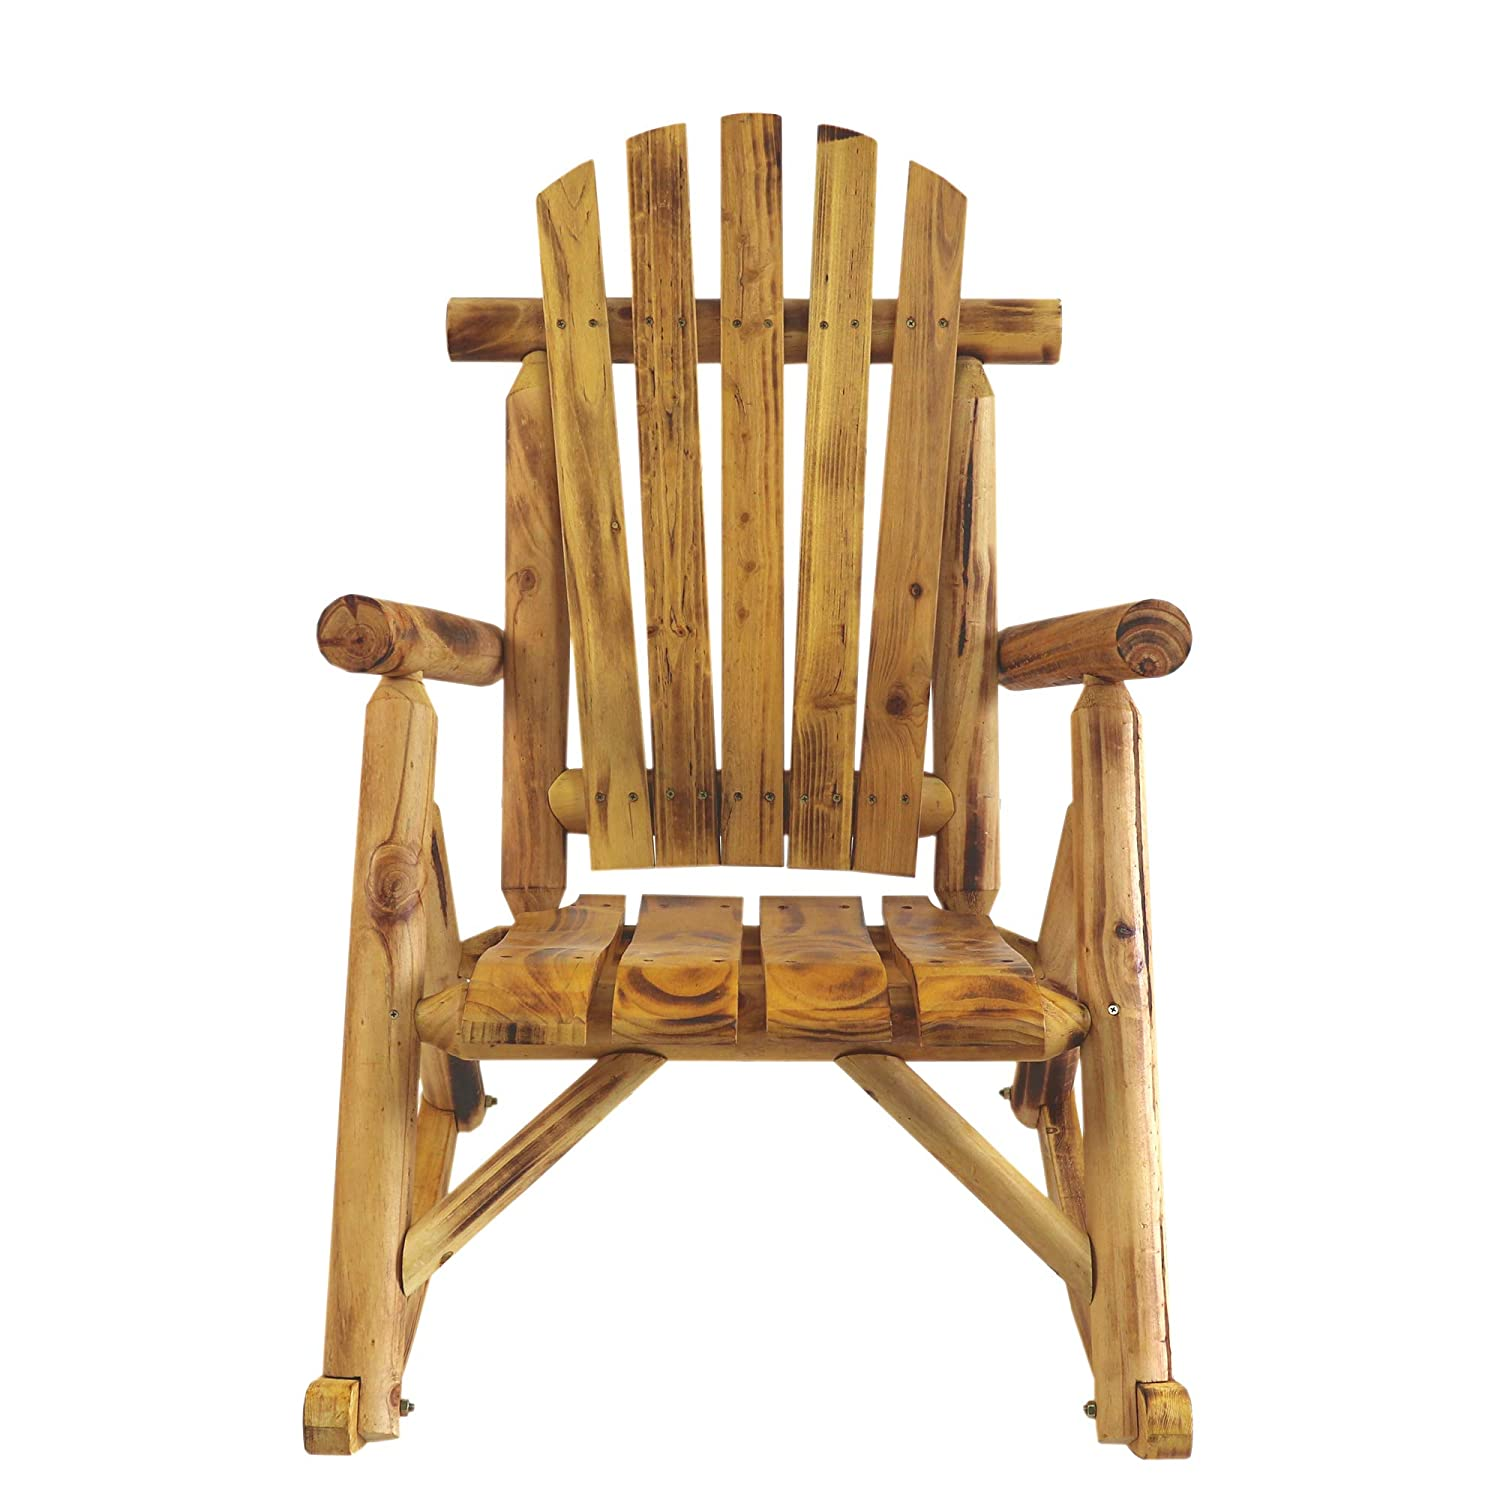 ALI VIRGO Rocking Chair Outdoor, Porch Log Stool, Ergonomics Heavy Duty Antique Lawn Leisure for Lounge Garden Patio Furniture, Wood Color